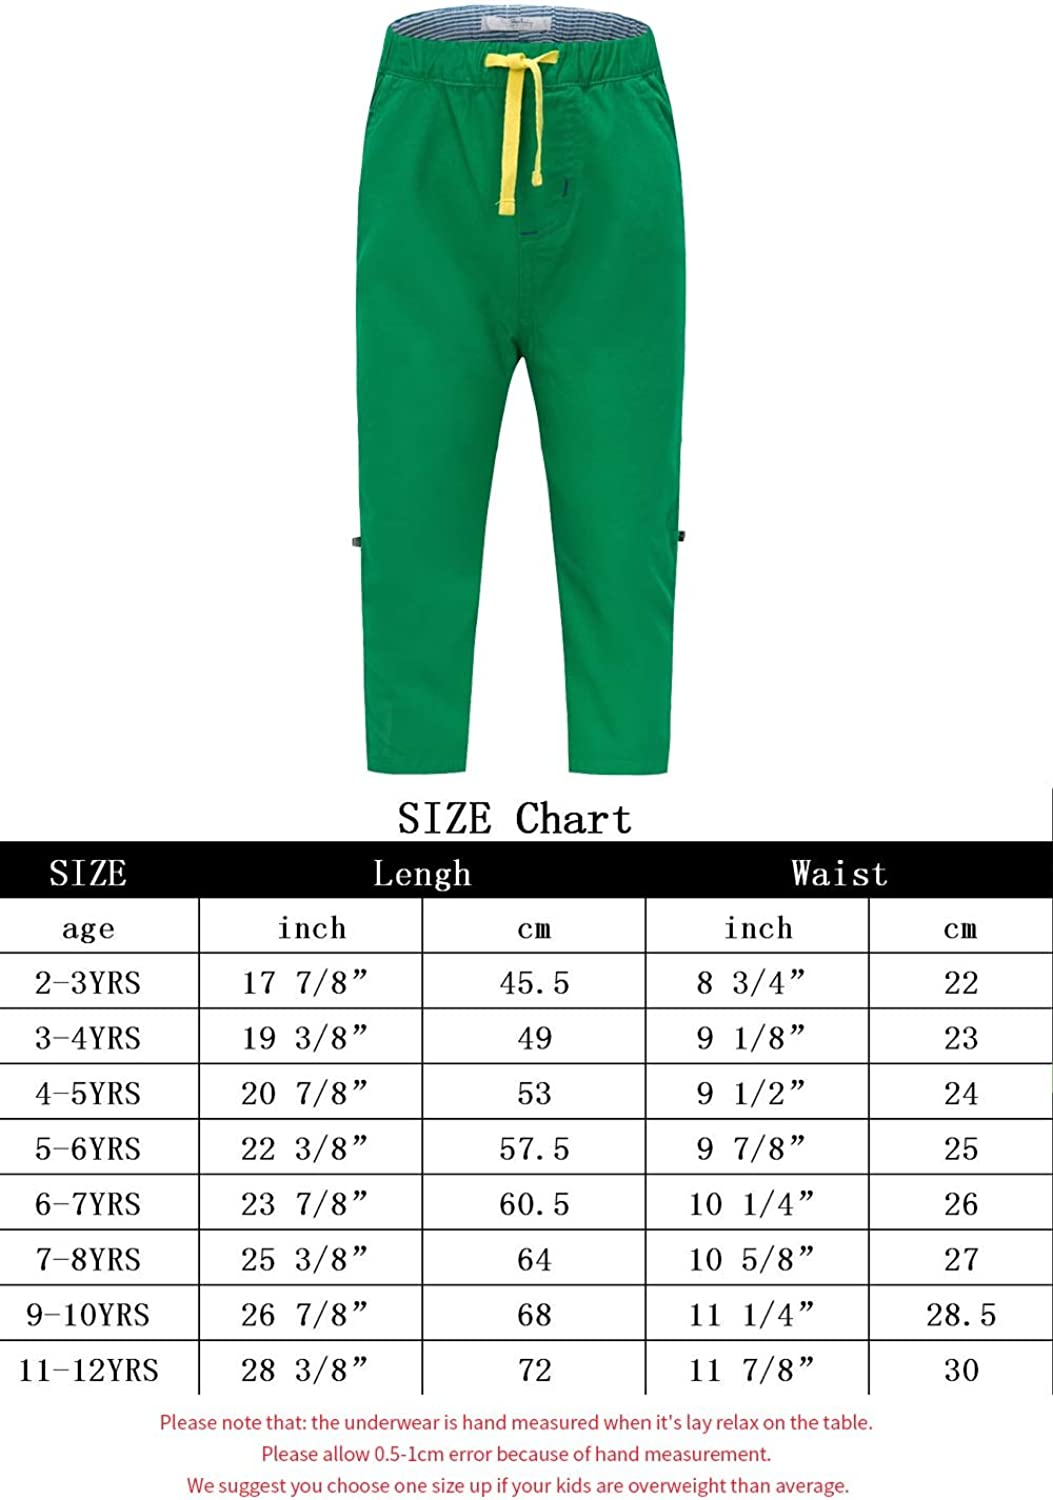 Gorboig Toddler Boys Knee Pull On Catton Pants Kids Childrens Casual Trousers